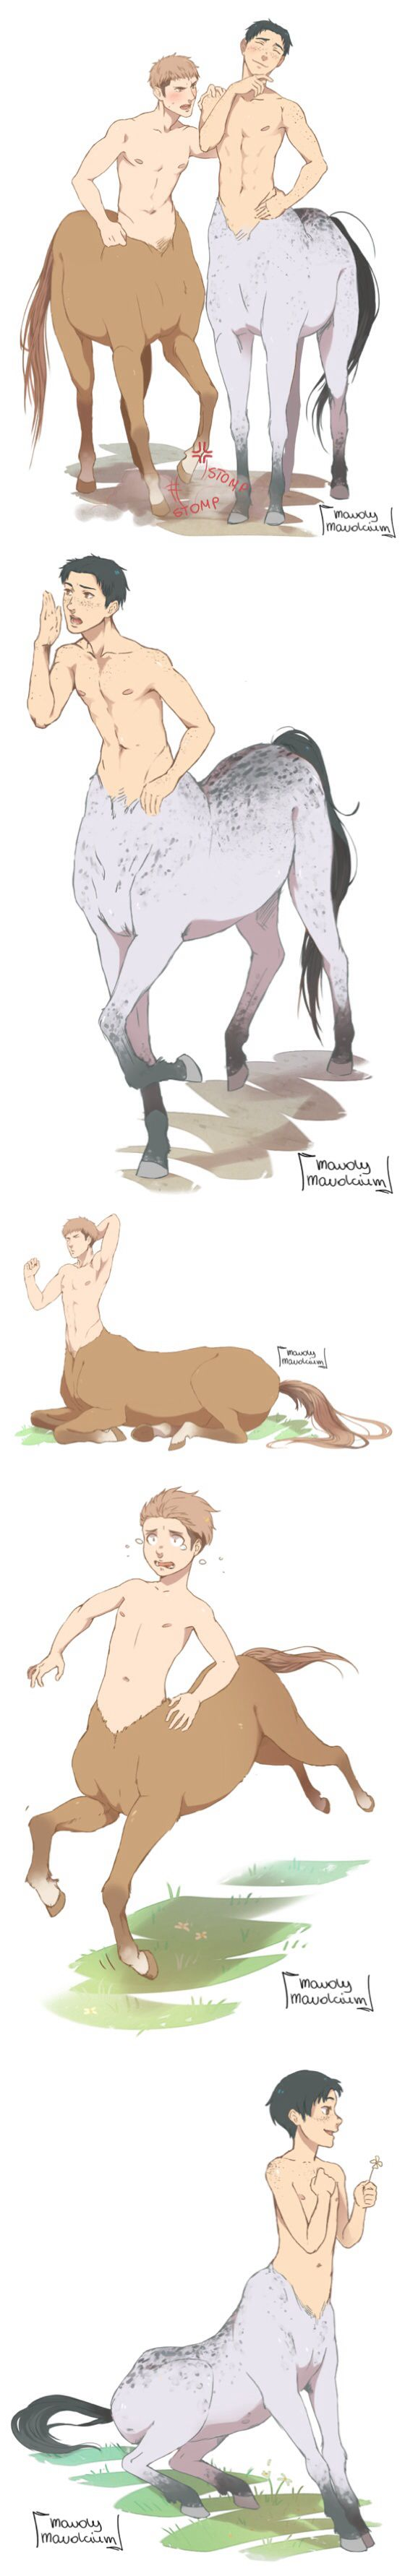 JeanMarco centaurs jean is more of a horse face now XD